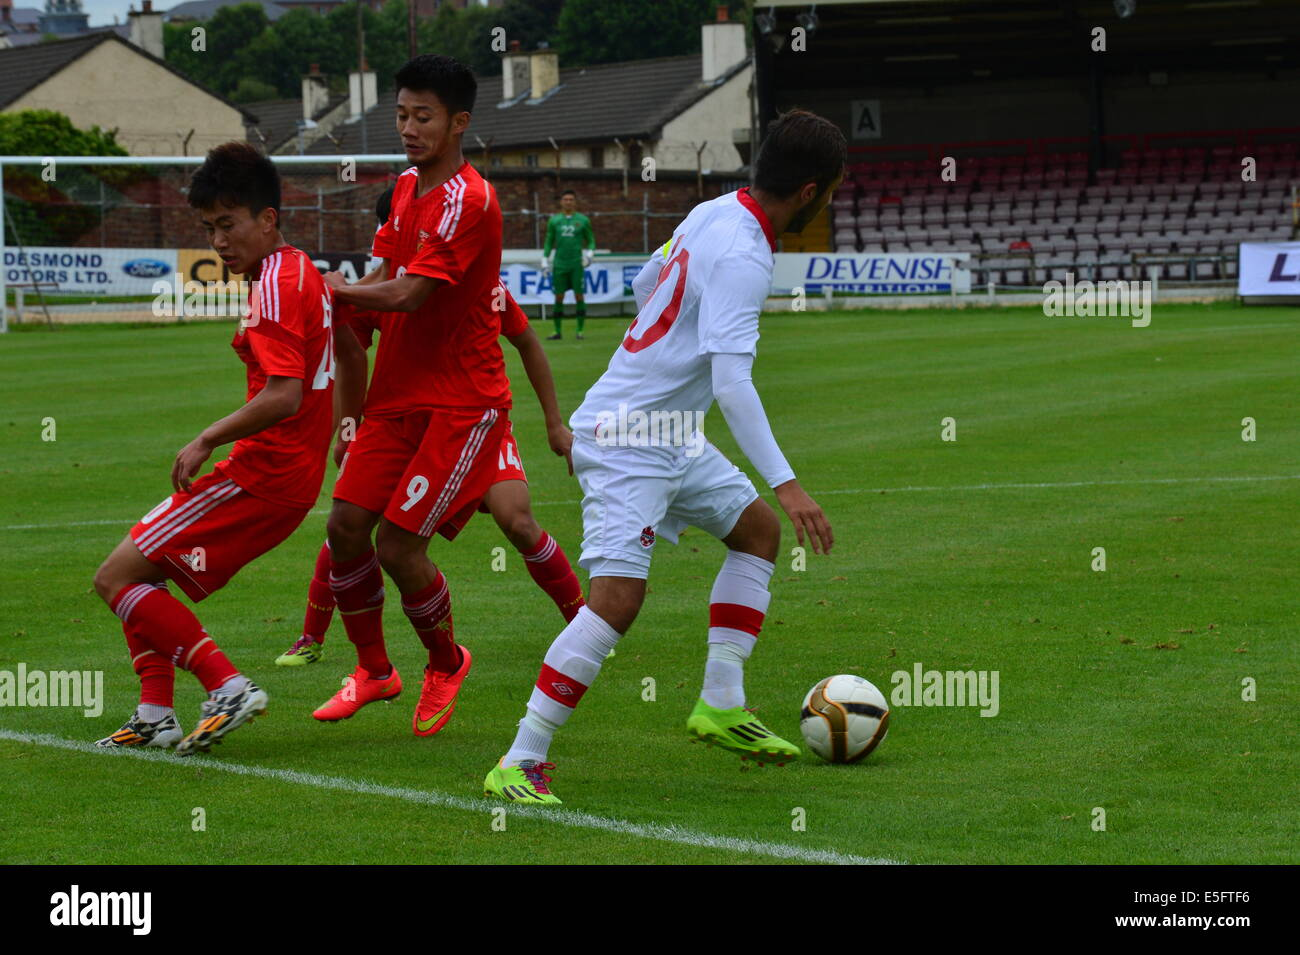 Derry, Londonderry, Northern Ireland. 30th July, 2014. Milk Cup Elite Section, Canada v China. Canada's Dylan - Stock Image